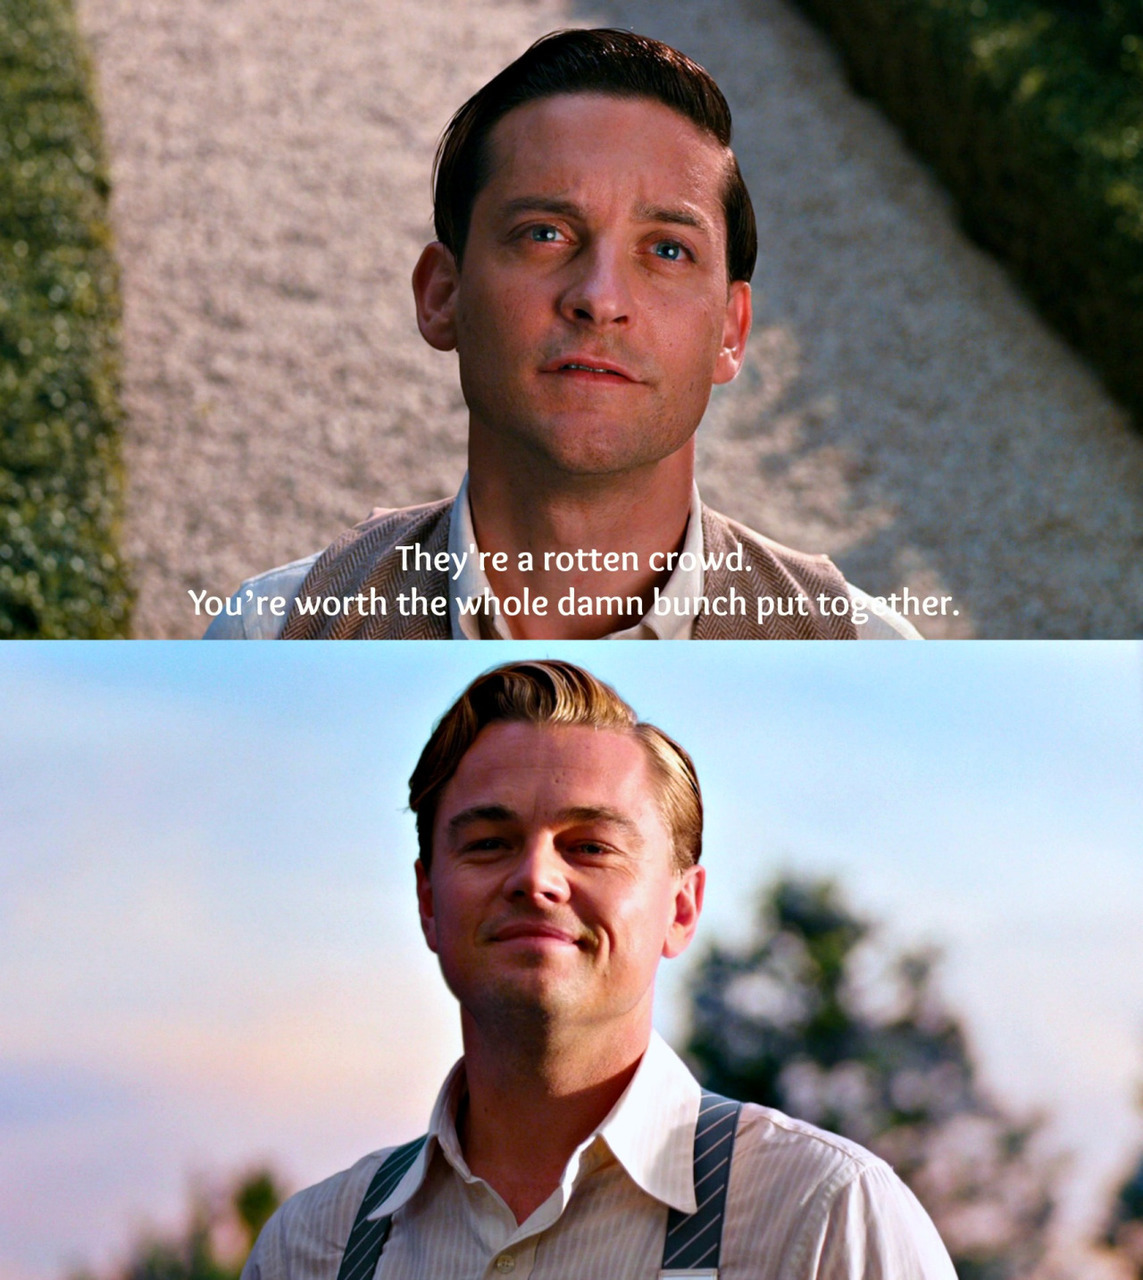 59 images about 💎oh.gatsby🌹 on We Heart It | See more about the great  gatsby, leonardo dicaprio and gatsby